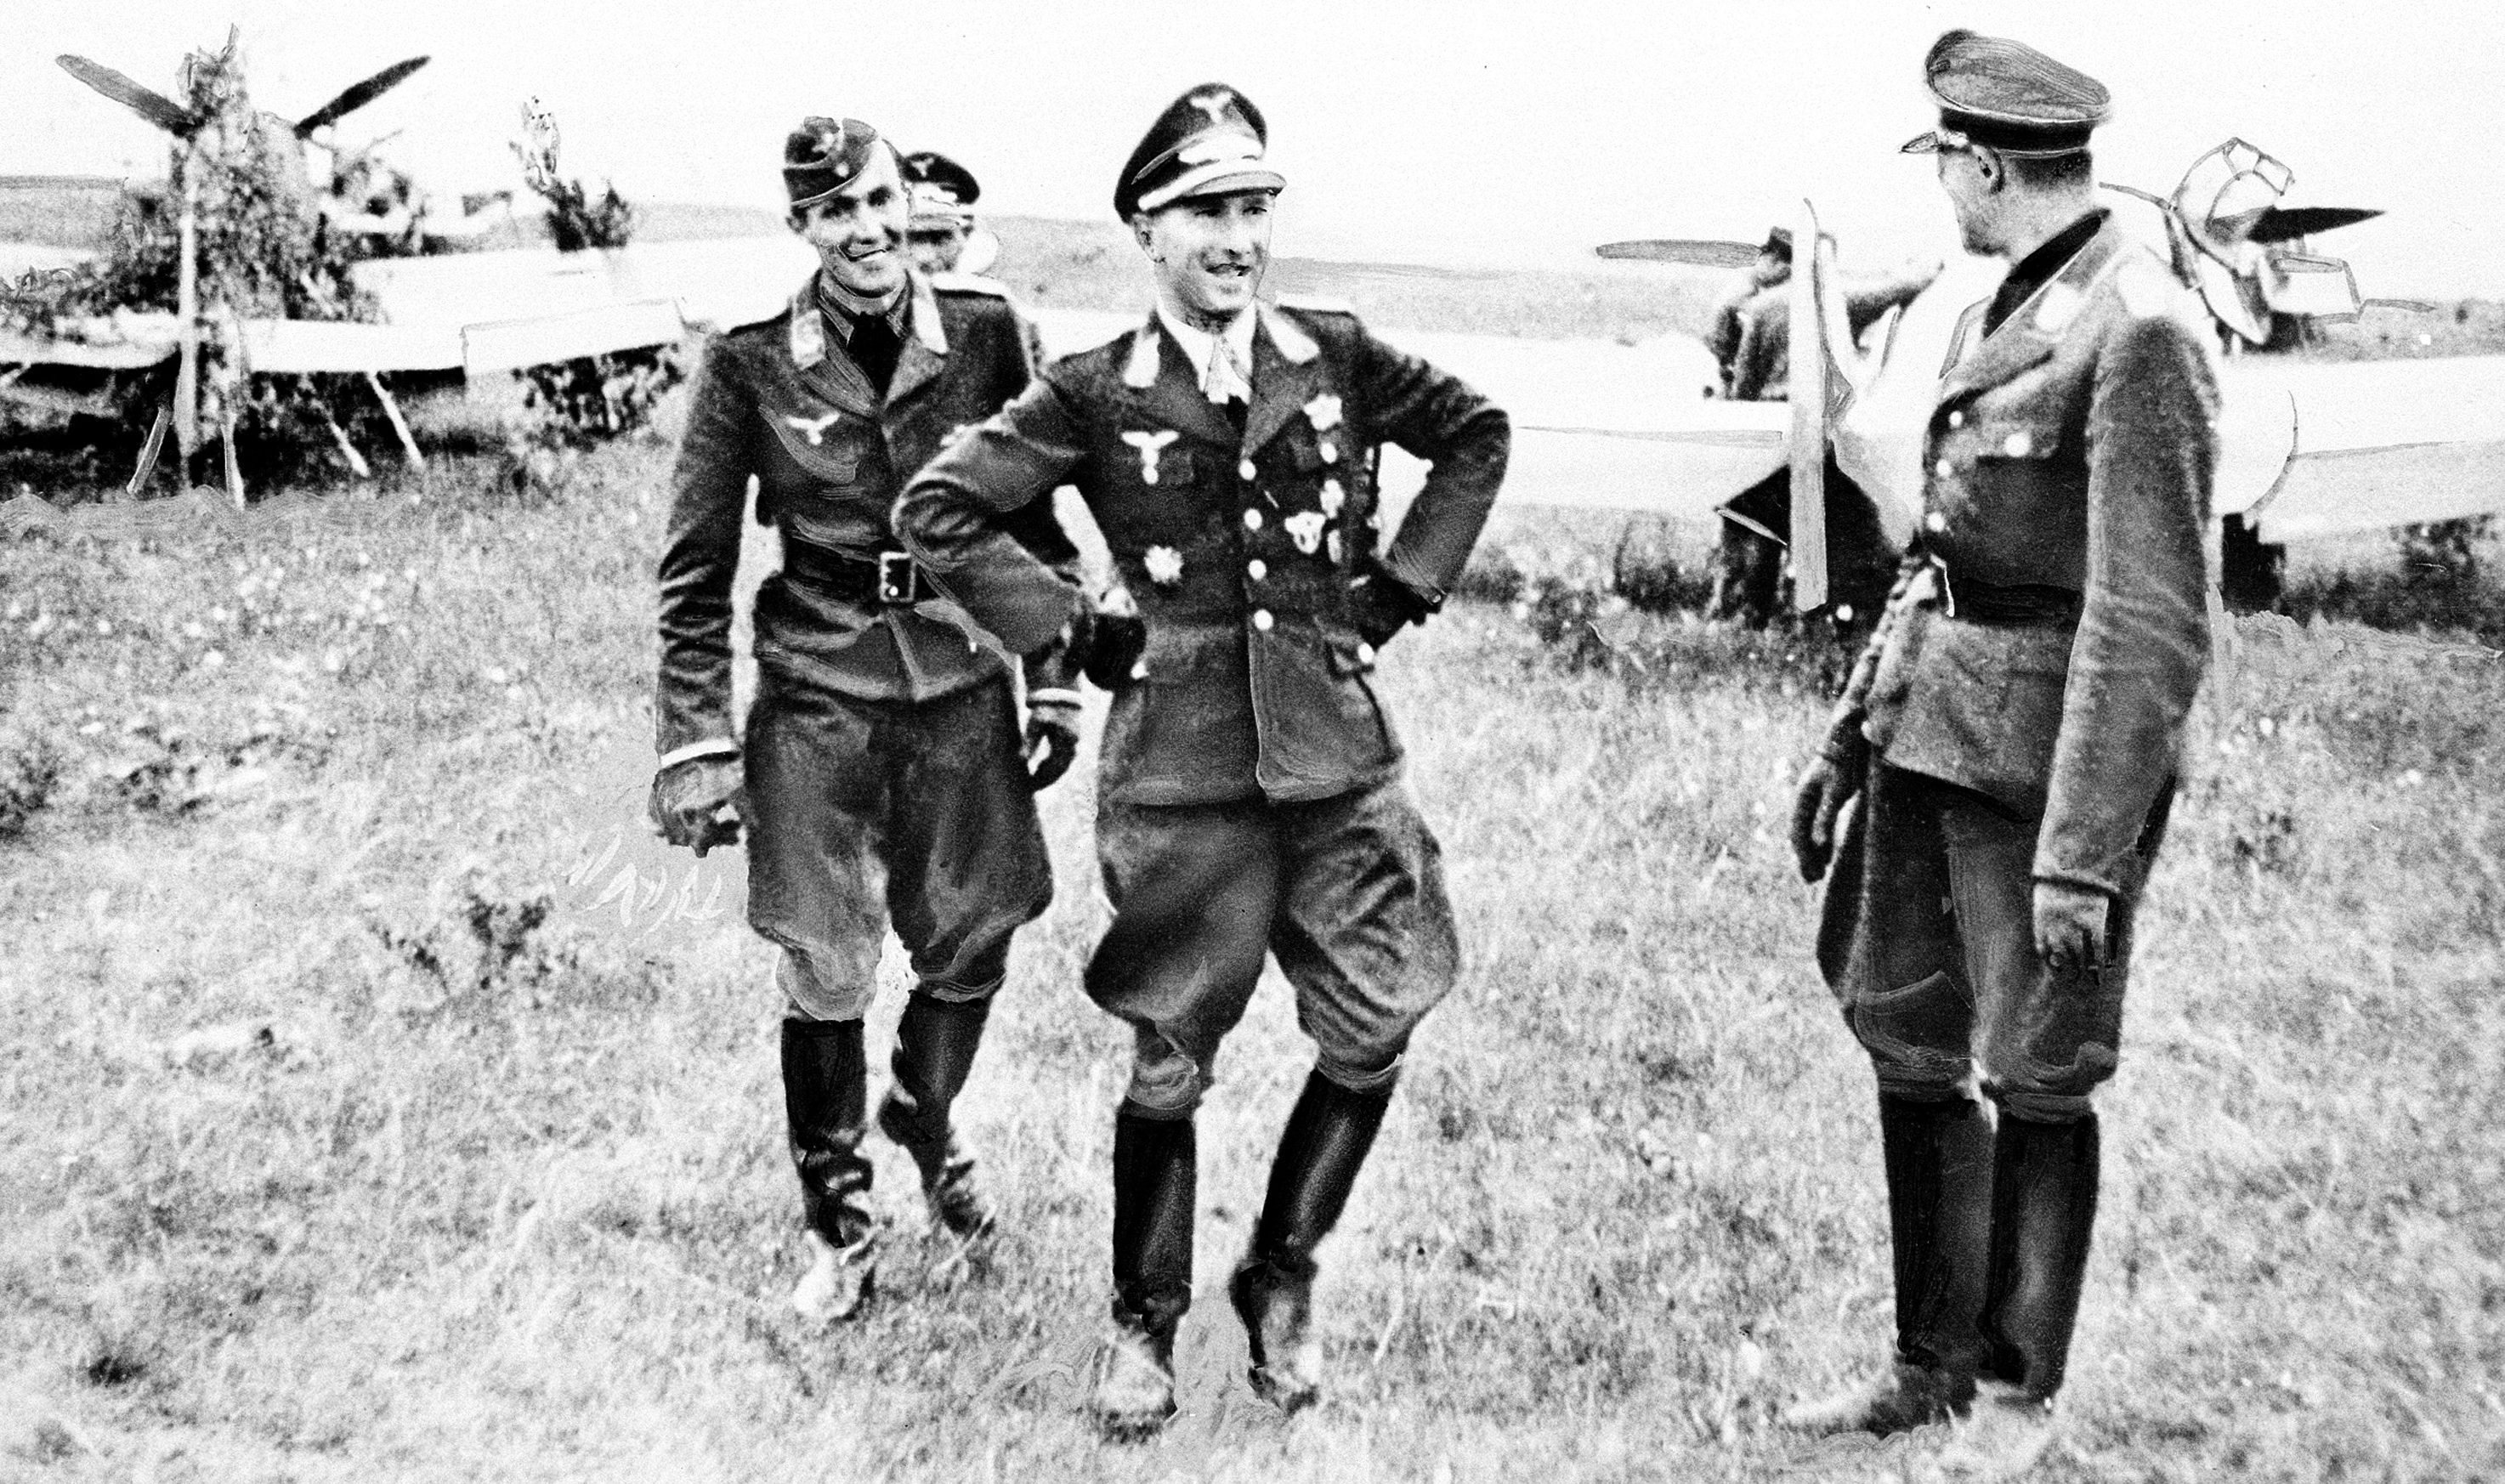 Lt. Col. Werner Moelders, center, highest-ranking ace of the German Luftwaffe and credited with having downed 101 enemy planes, shares a laugh with unidentified comrades as he appears on an air field at the Eastern Front, on August 30, 1941.